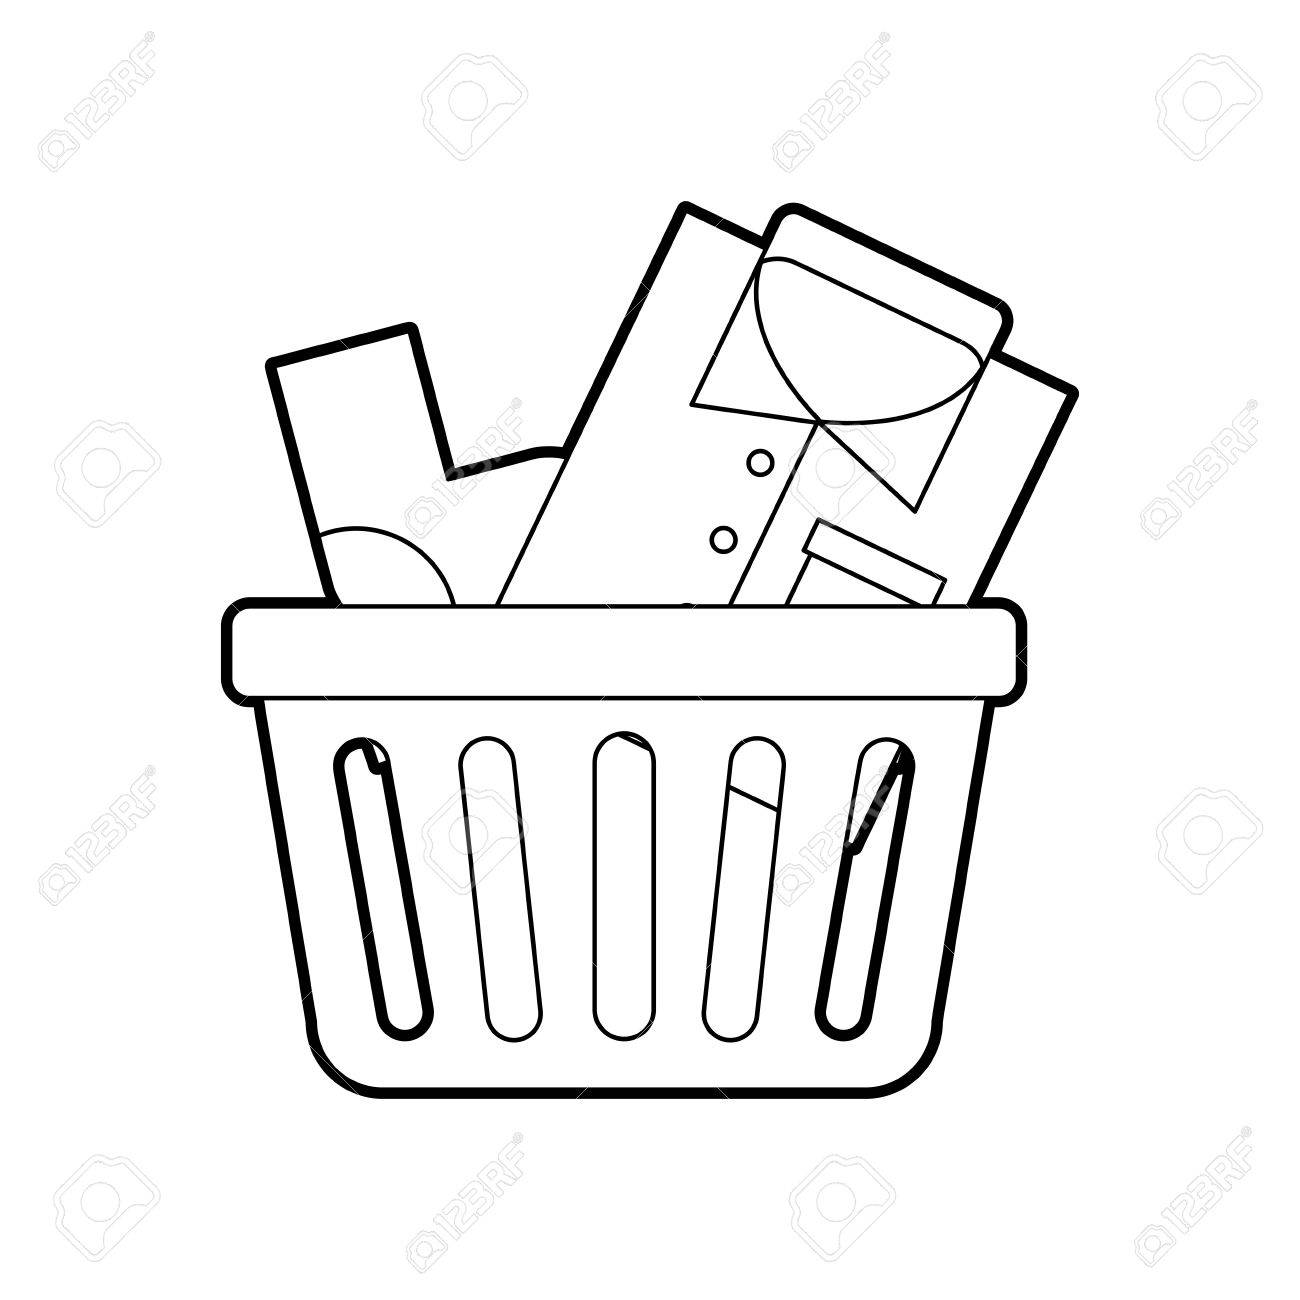 1300x1300 Laundry Basket With Clothes Vector Illustration Design Royalty